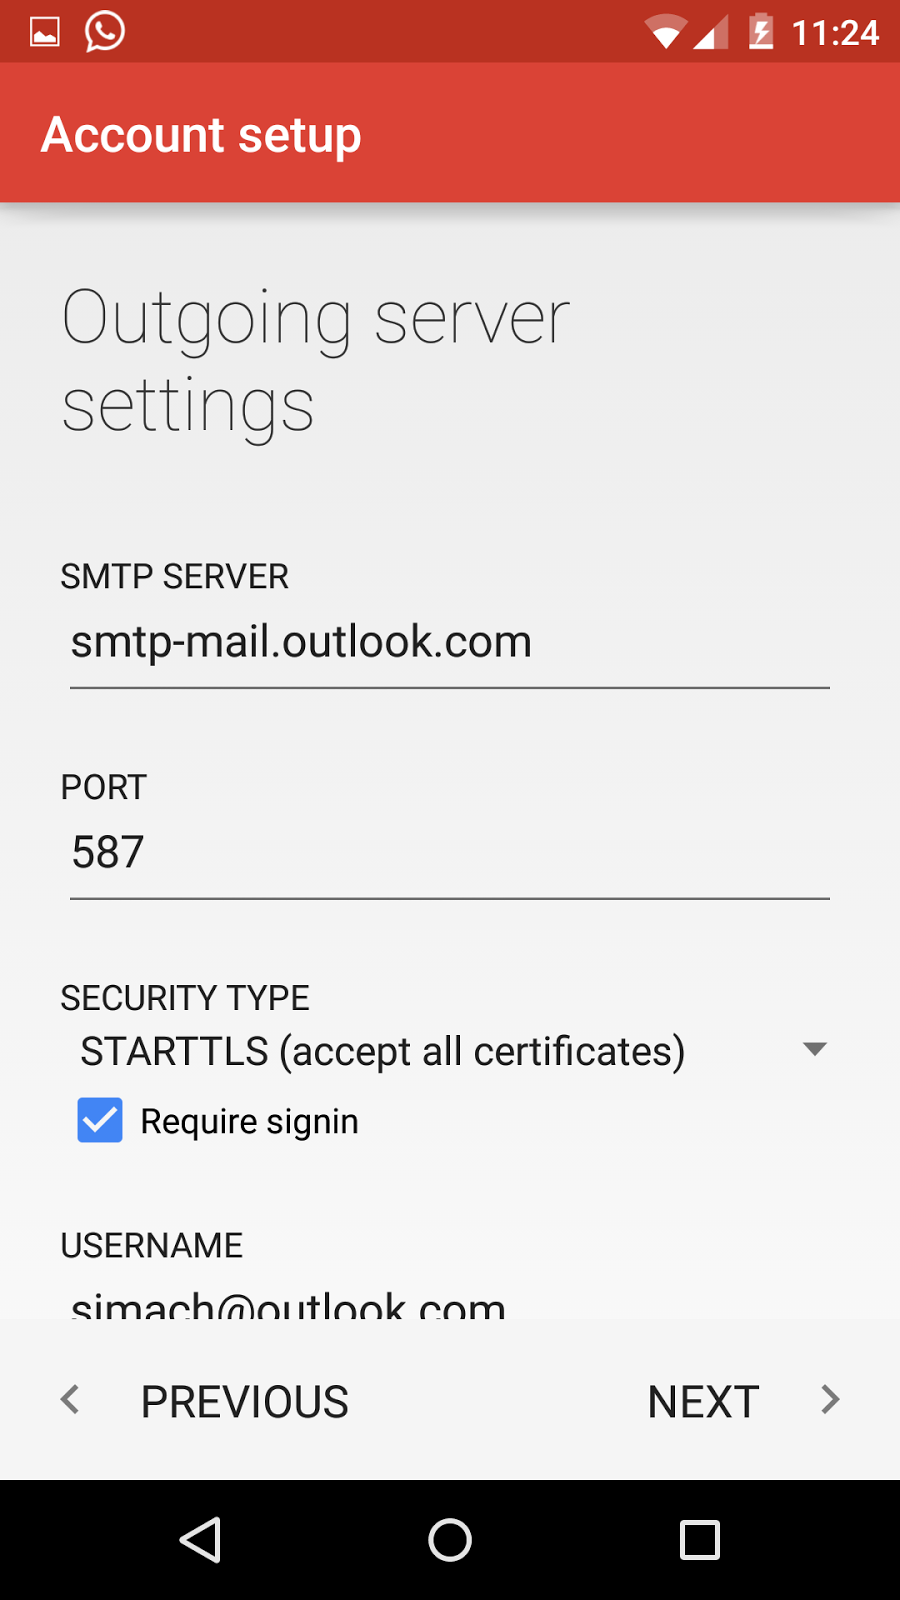 outgoing-server-settings-hotmail